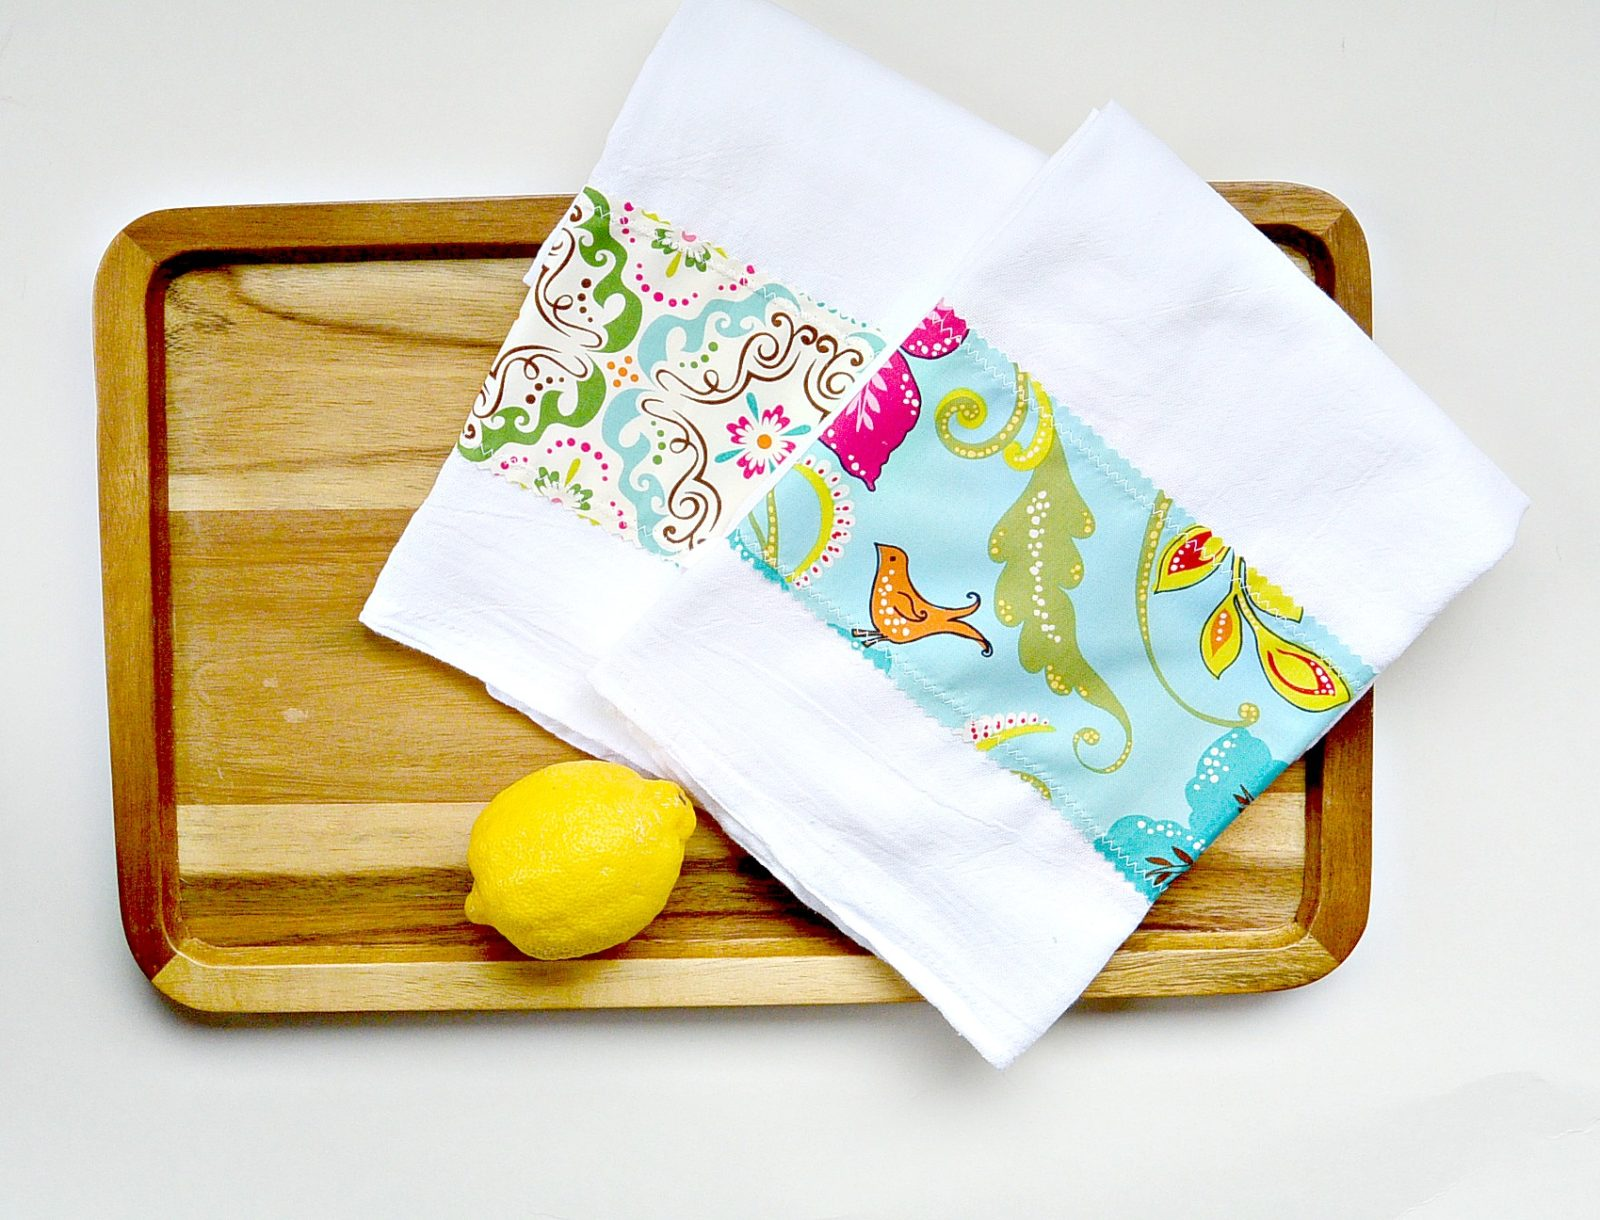 Dazzling A Stitch What Size Is A Tea Towel What Is A Tea Towel Set How To Make Tea Towel Yarn Break Easy Diy Tea Towels Mama photos What Is A Tea Towel